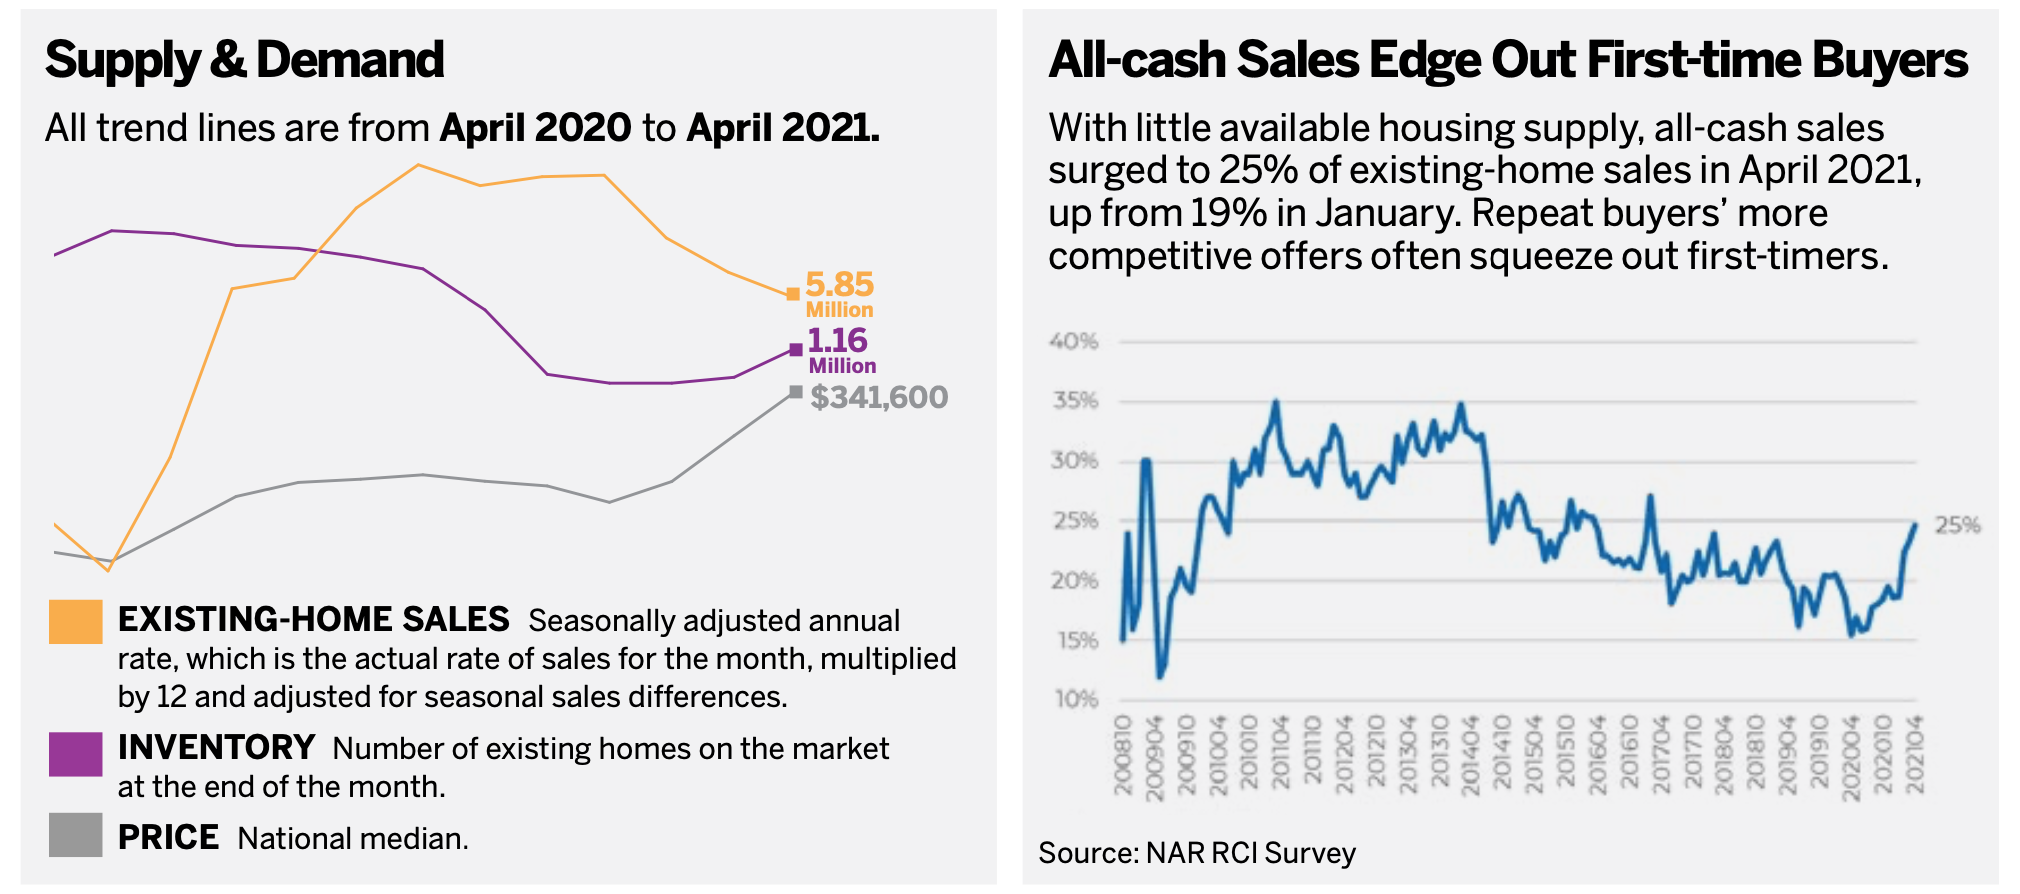 Supply & Demand/All-cash Sales Edge Out First-time Buyers